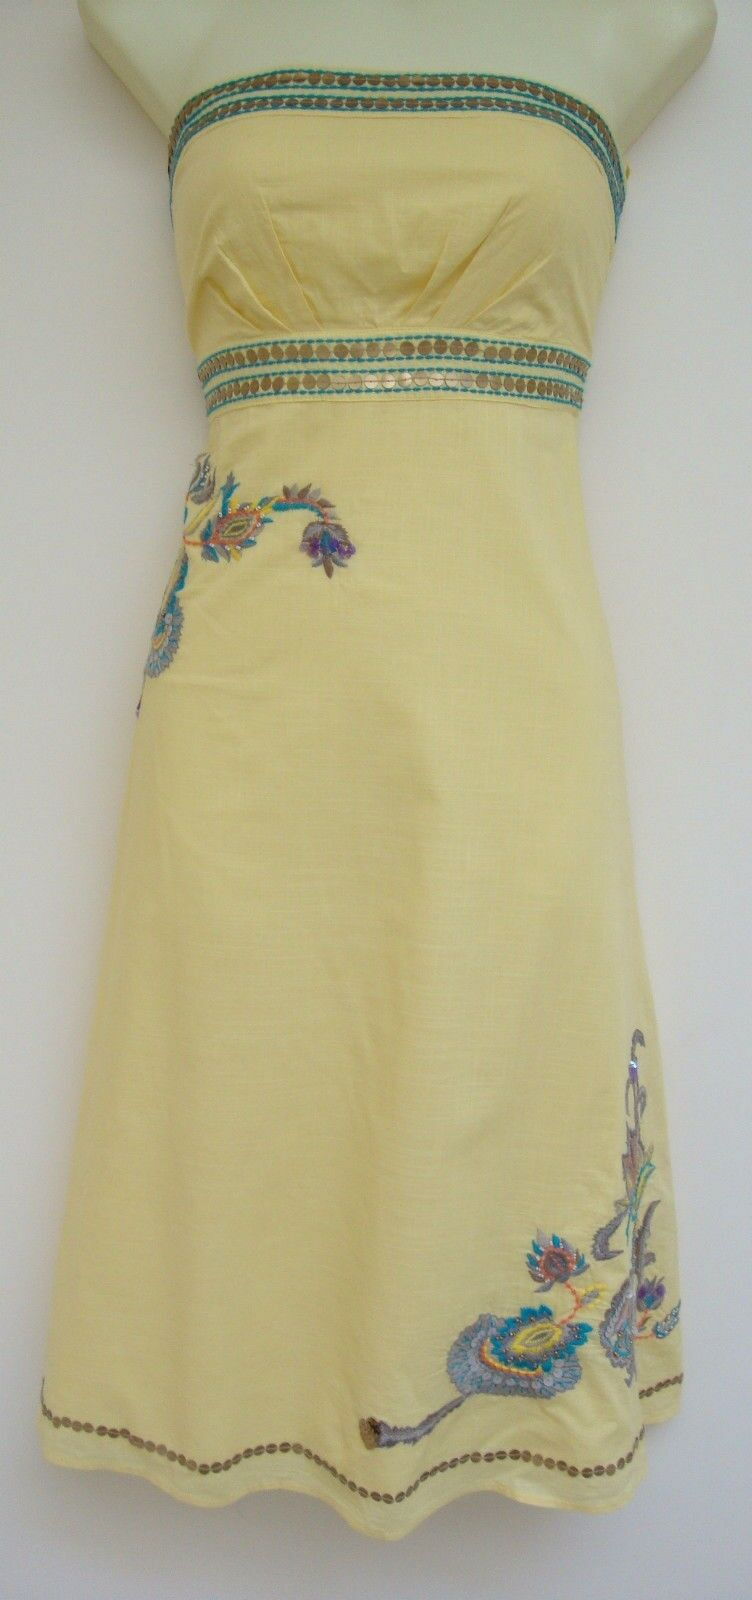 MONSOON ANNALISA YELLOW EMBROIDERED COTTON DRESS 10 - a